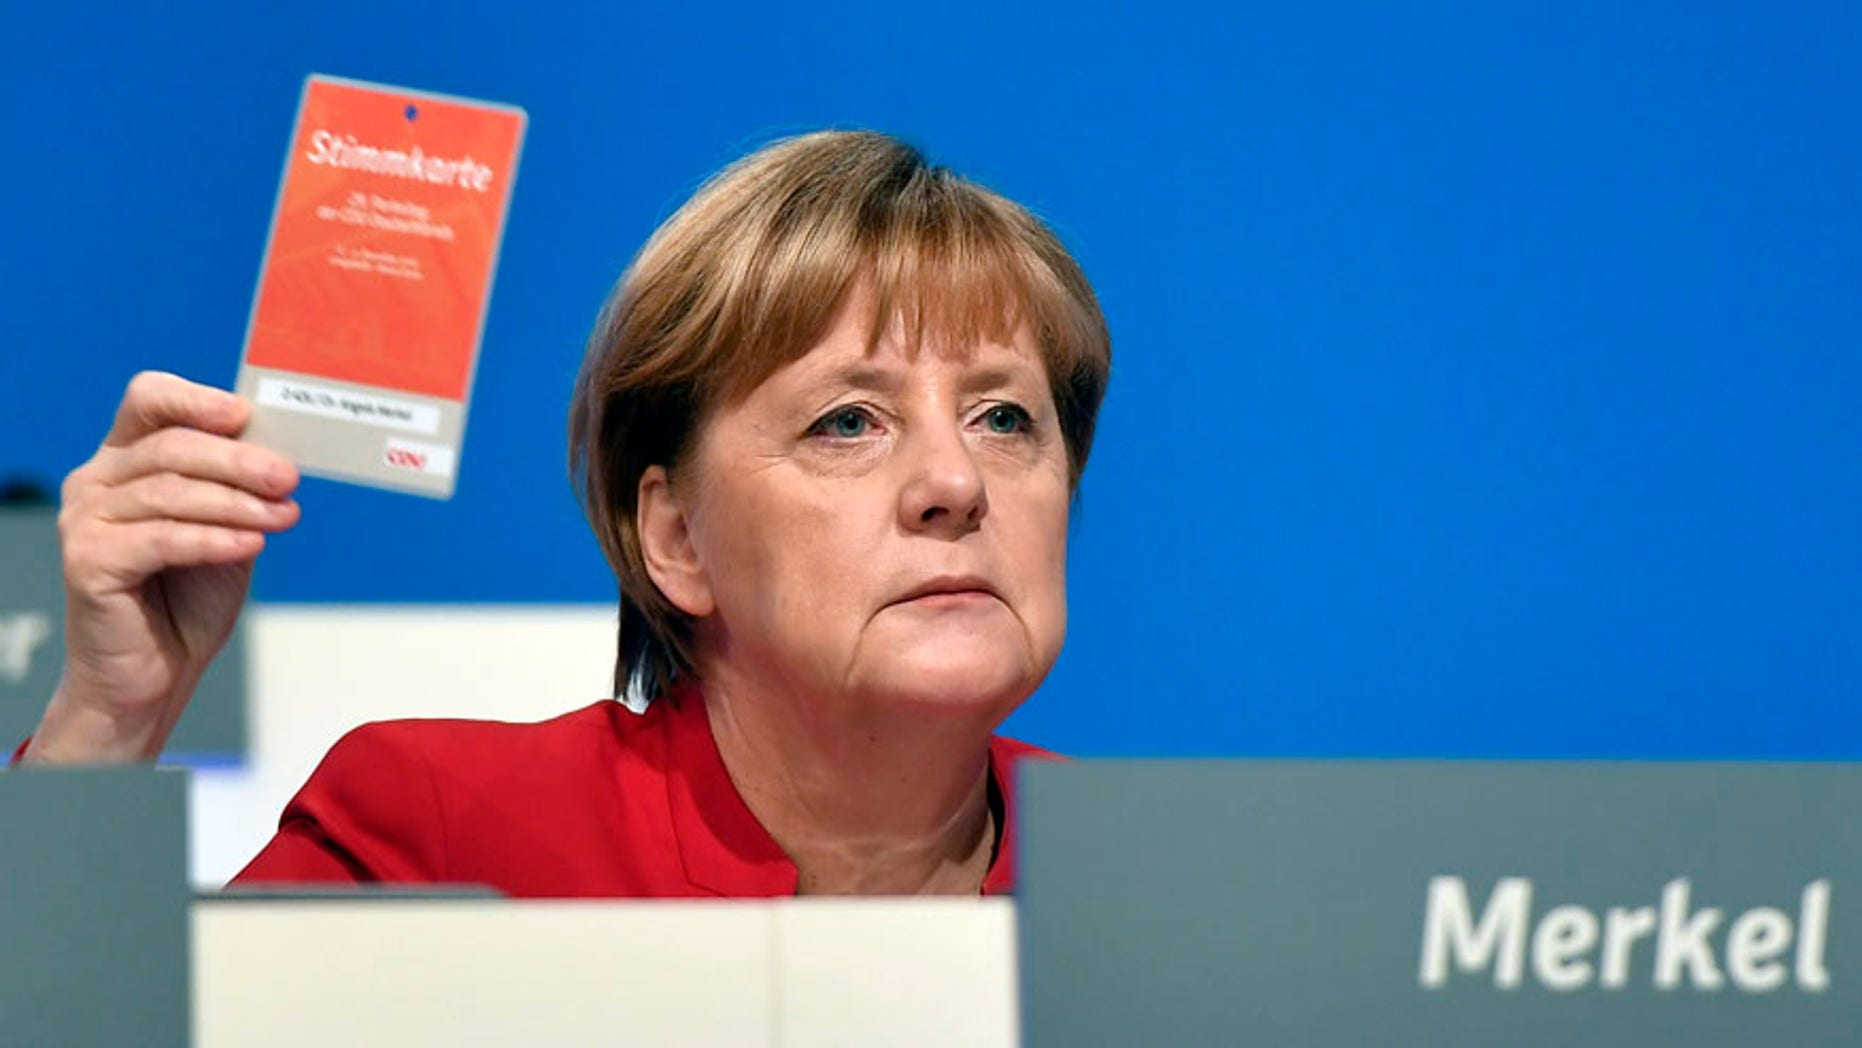 German Chancellor and Chairwomen of the CDU, Angela Merkel, holds an voting ticket during a party conference of the Christian Democratic Union (CDU) in Essen, Germany, Tuesday, Dec. 6, 2016. Chancellor Angela Merkel has won a new two-year term as leader of Germany's main conservative party after she won 89.5 percent of delegates' votes at a party congress. (AP Photo/Martin Meissner)